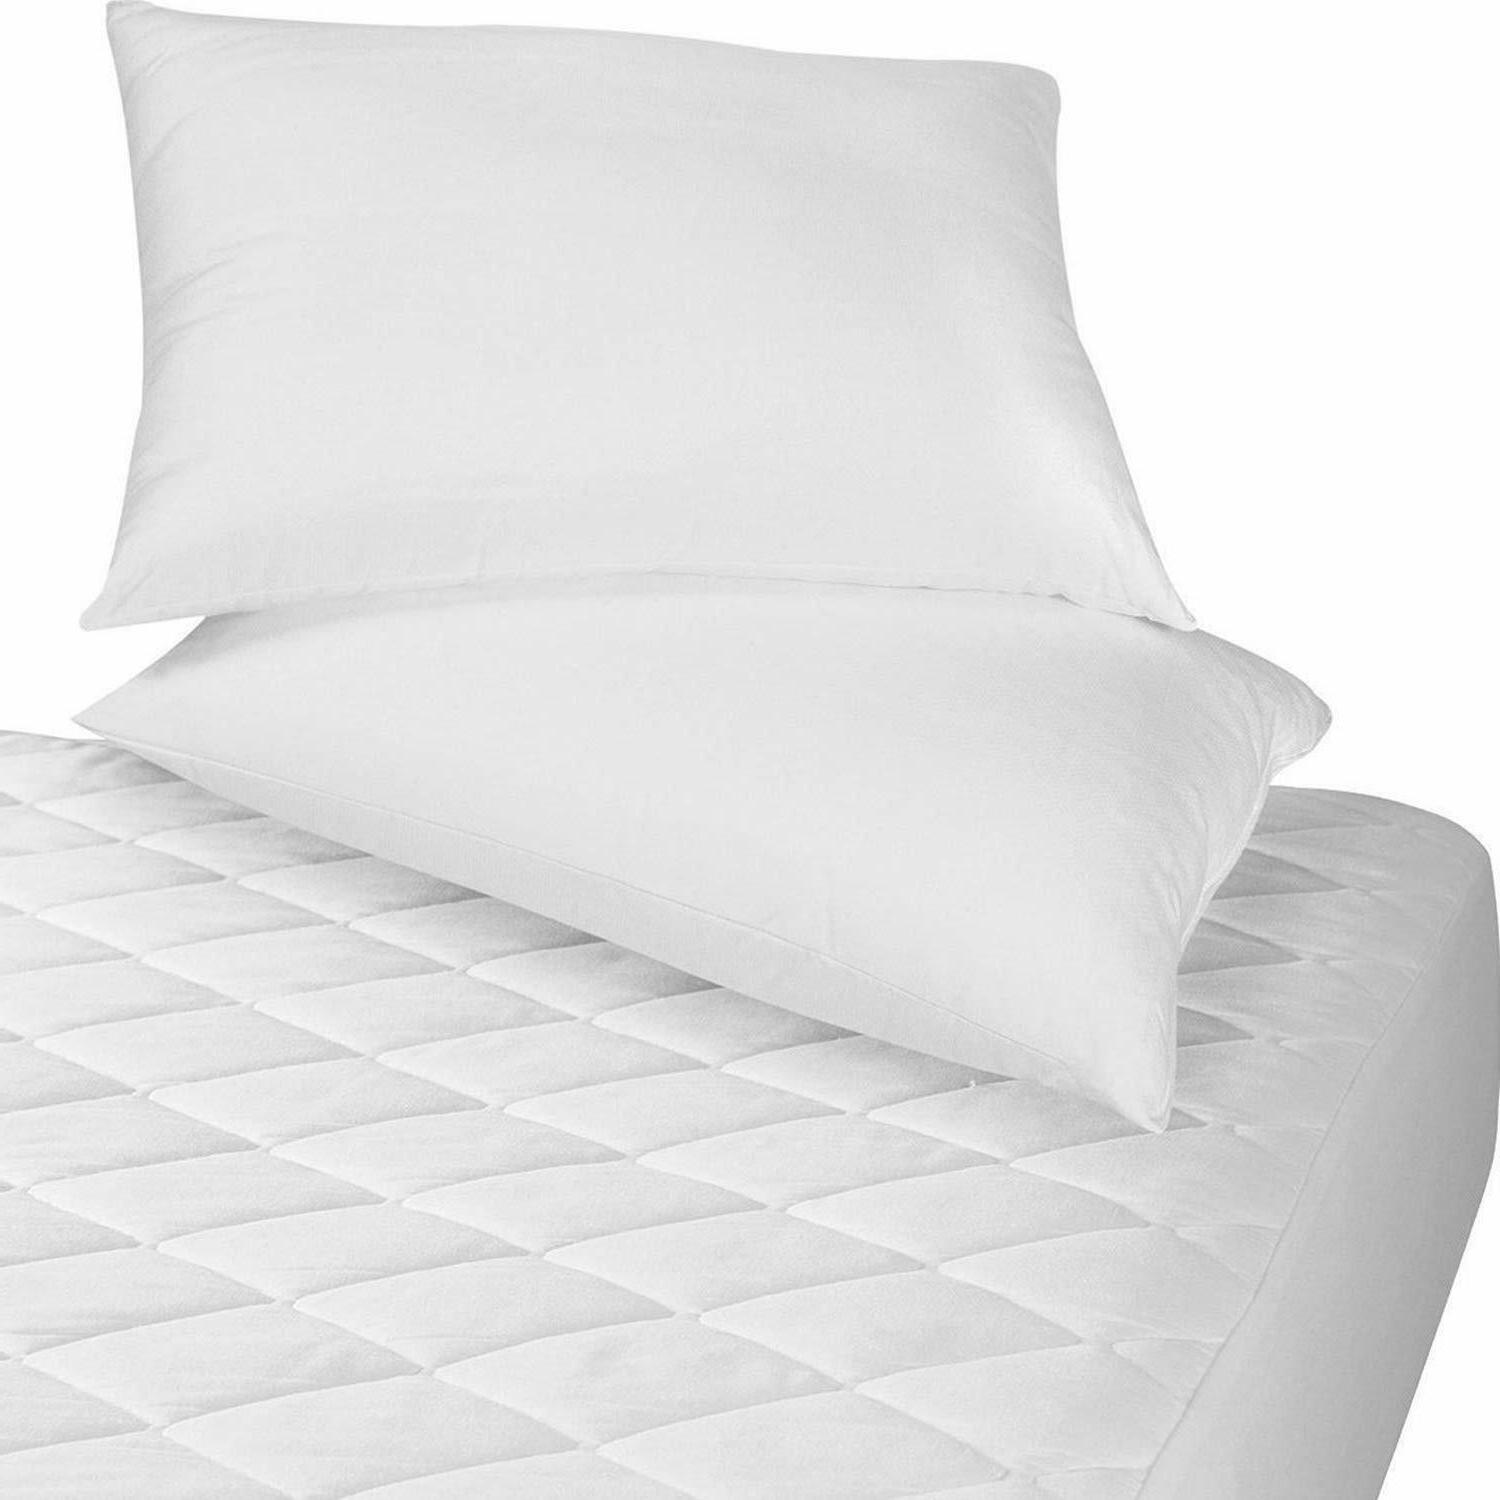 Queen Size Quilted Fitted Super Pad Cover